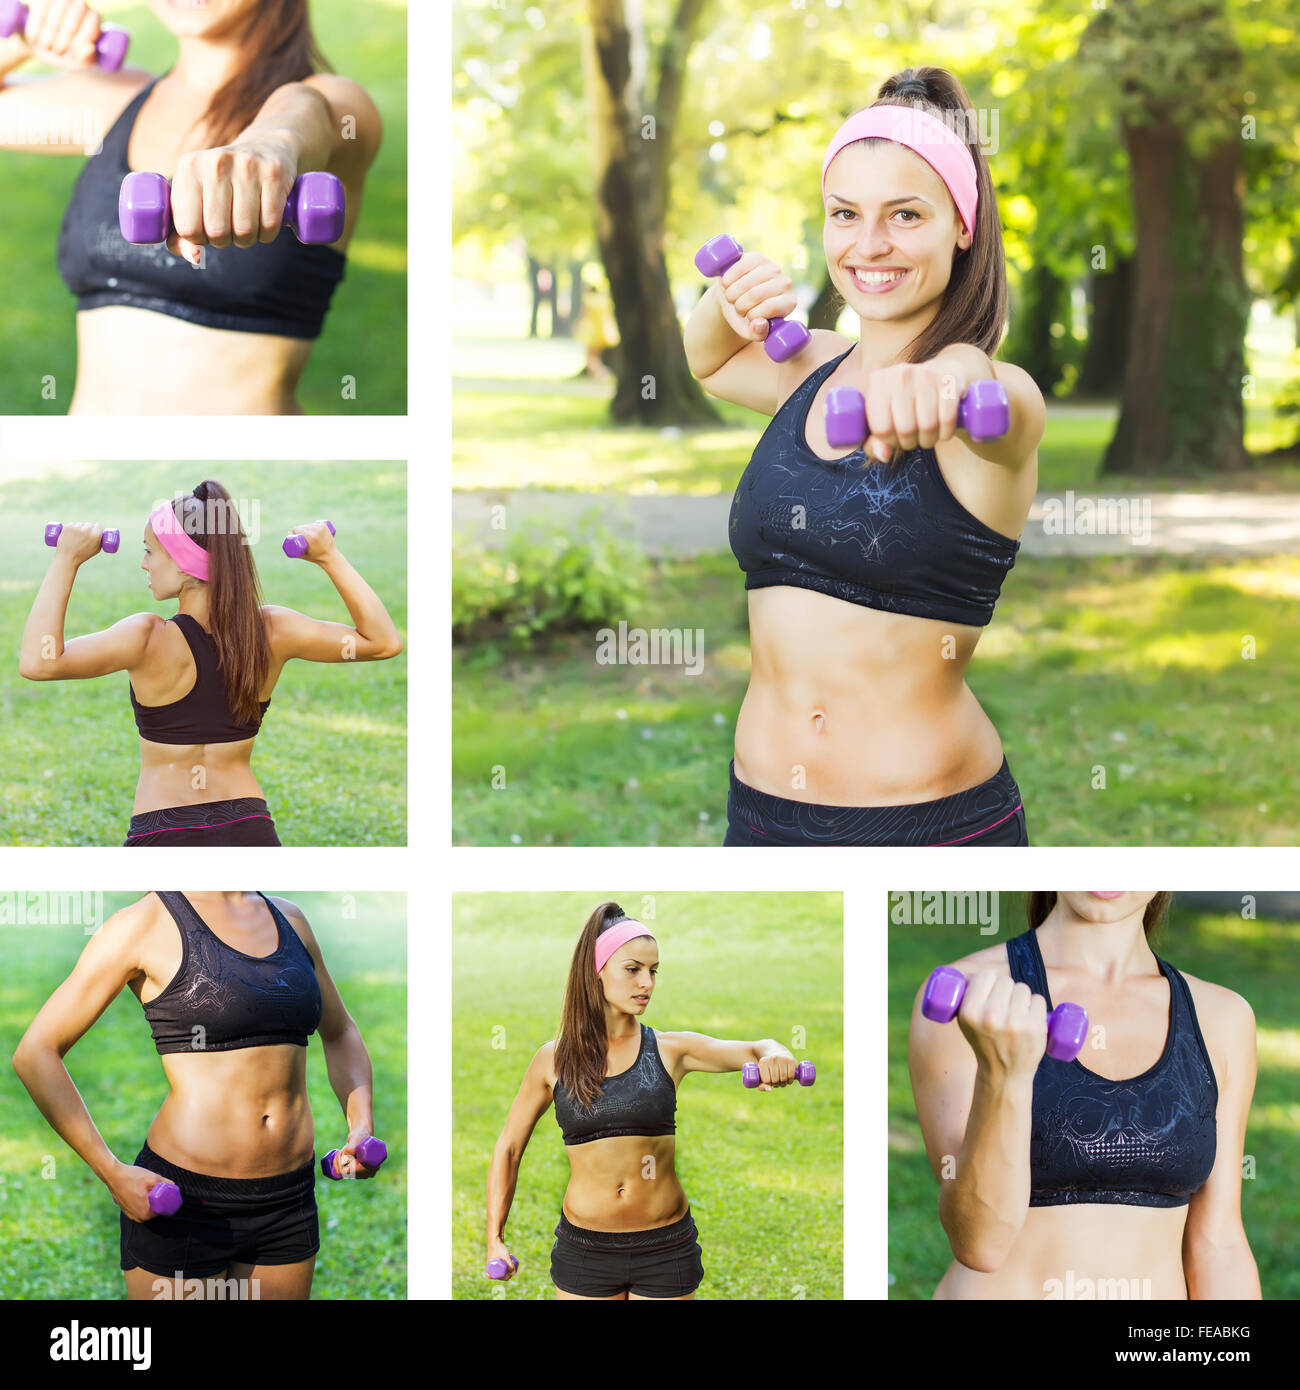 Fitness Slim Woman Training with dumbbells. Collage of attractive female practicing using hand weights outdoor. - Stock Image